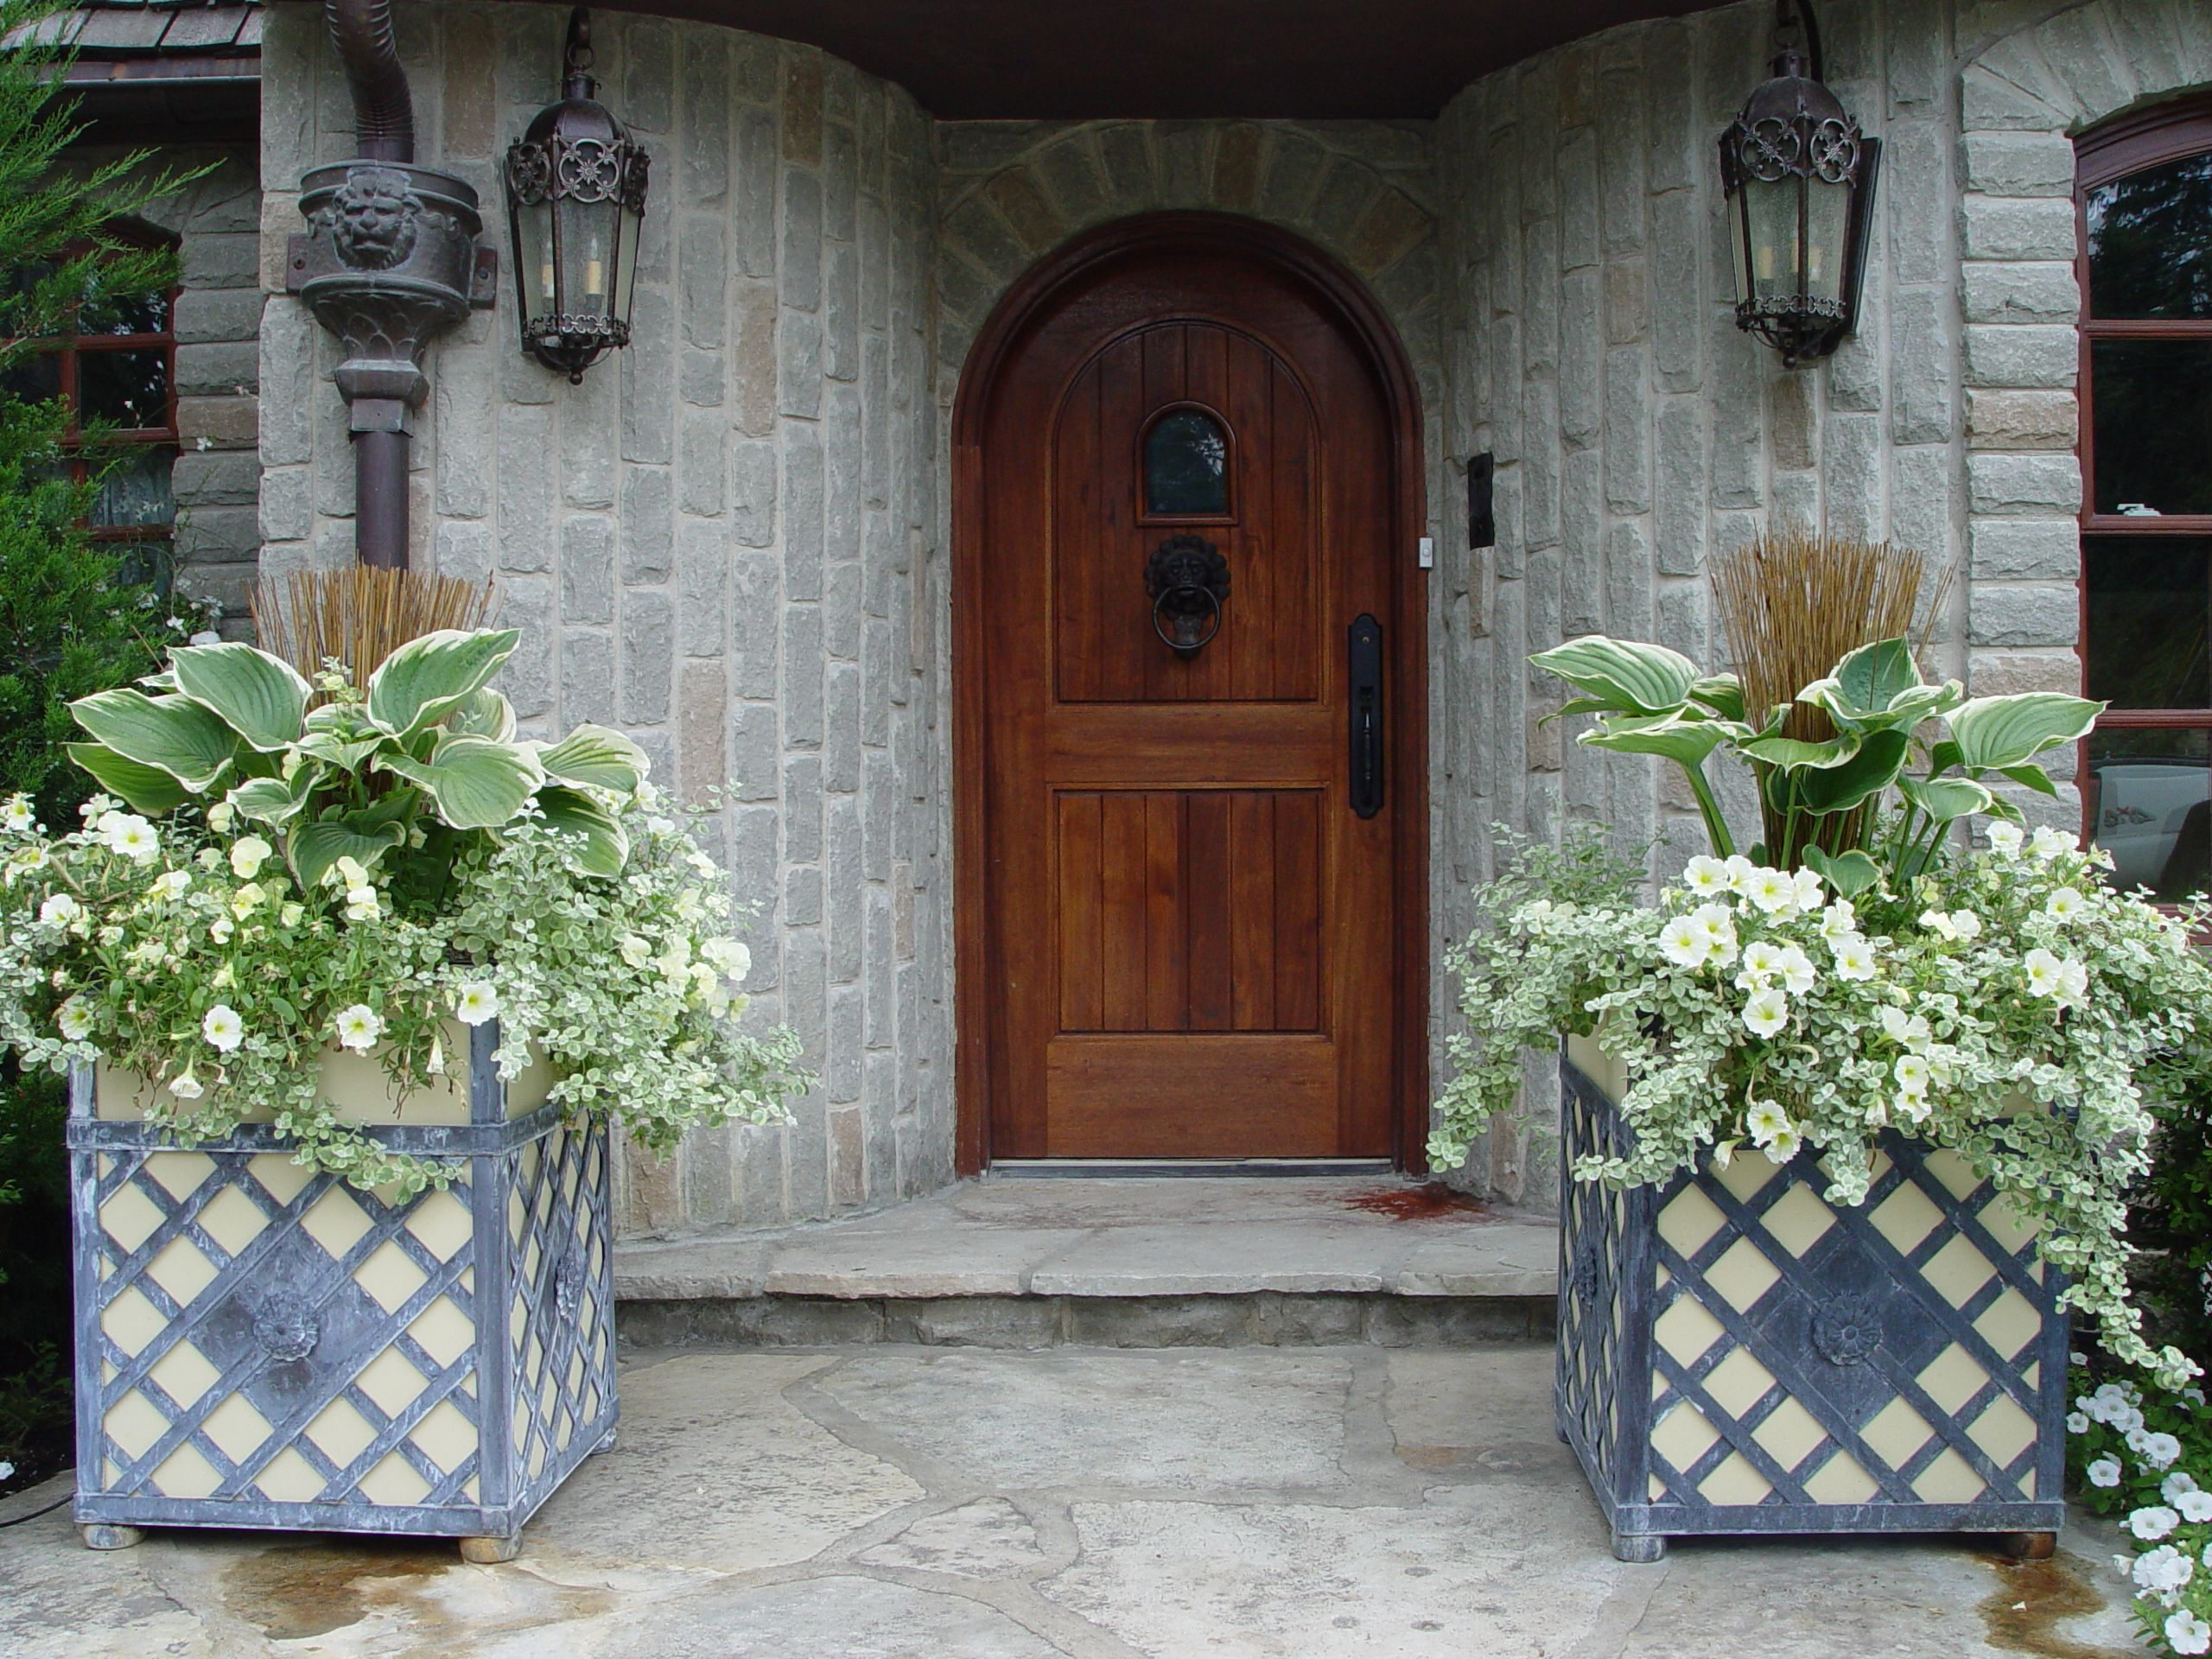 nuts urns plant for canada walmart hrcouncil planter outside sale black planters info garden modern indoor in front zimbabwe door